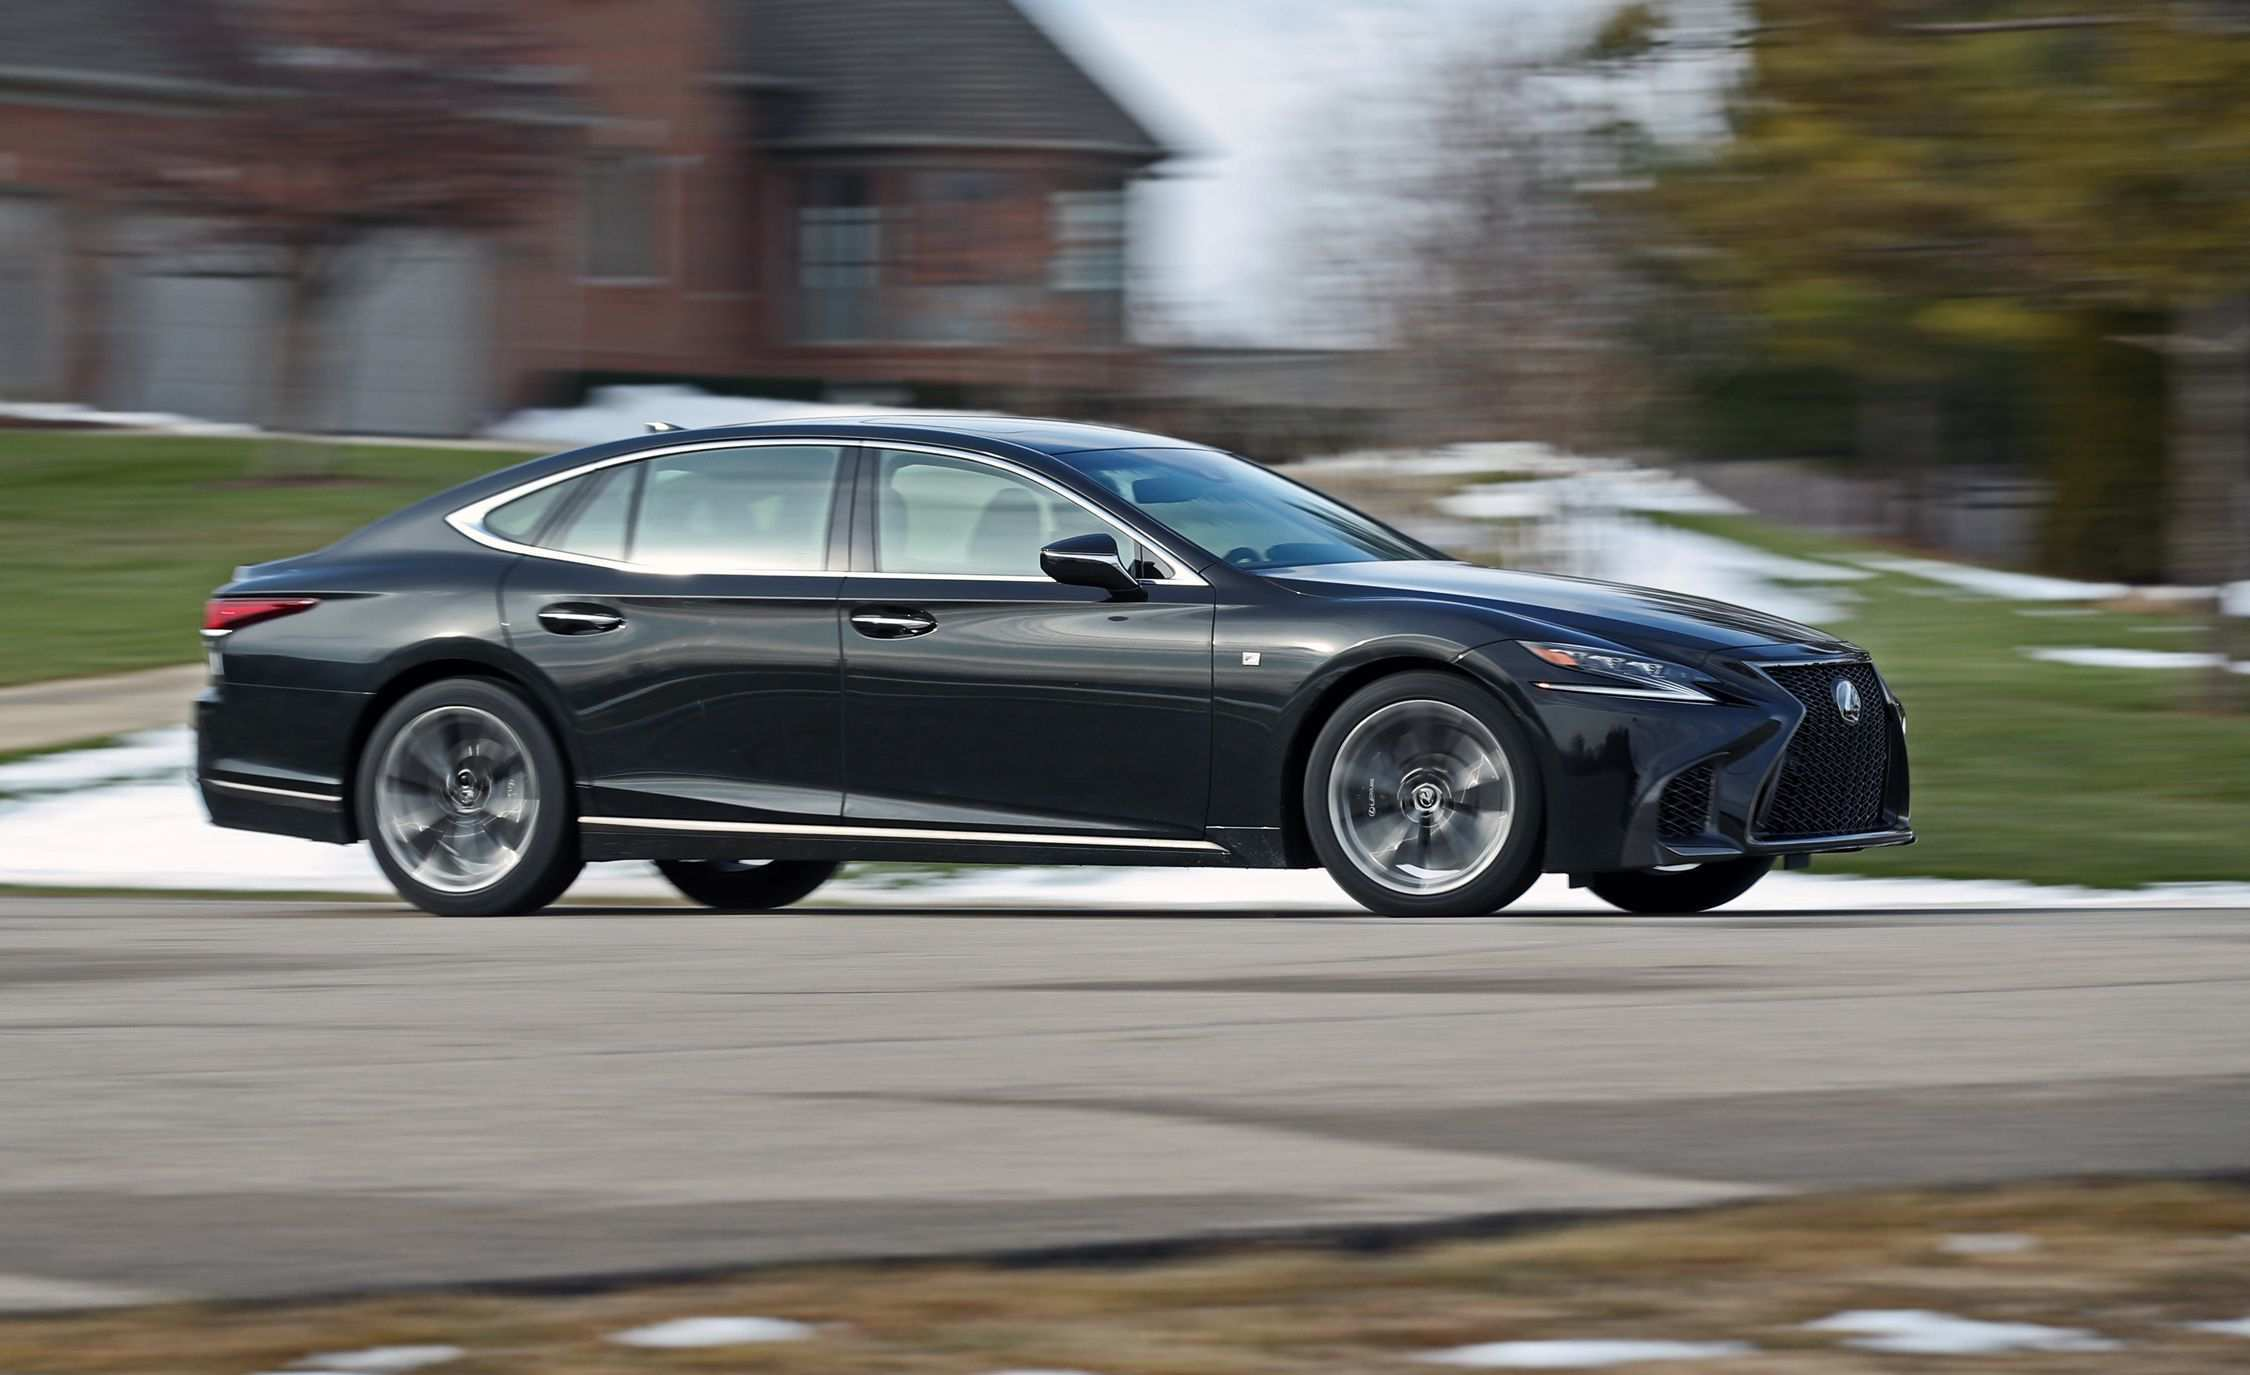 86 New 2019 Lexus Ls 500 Pictures with 2019 Lexus Ls 500